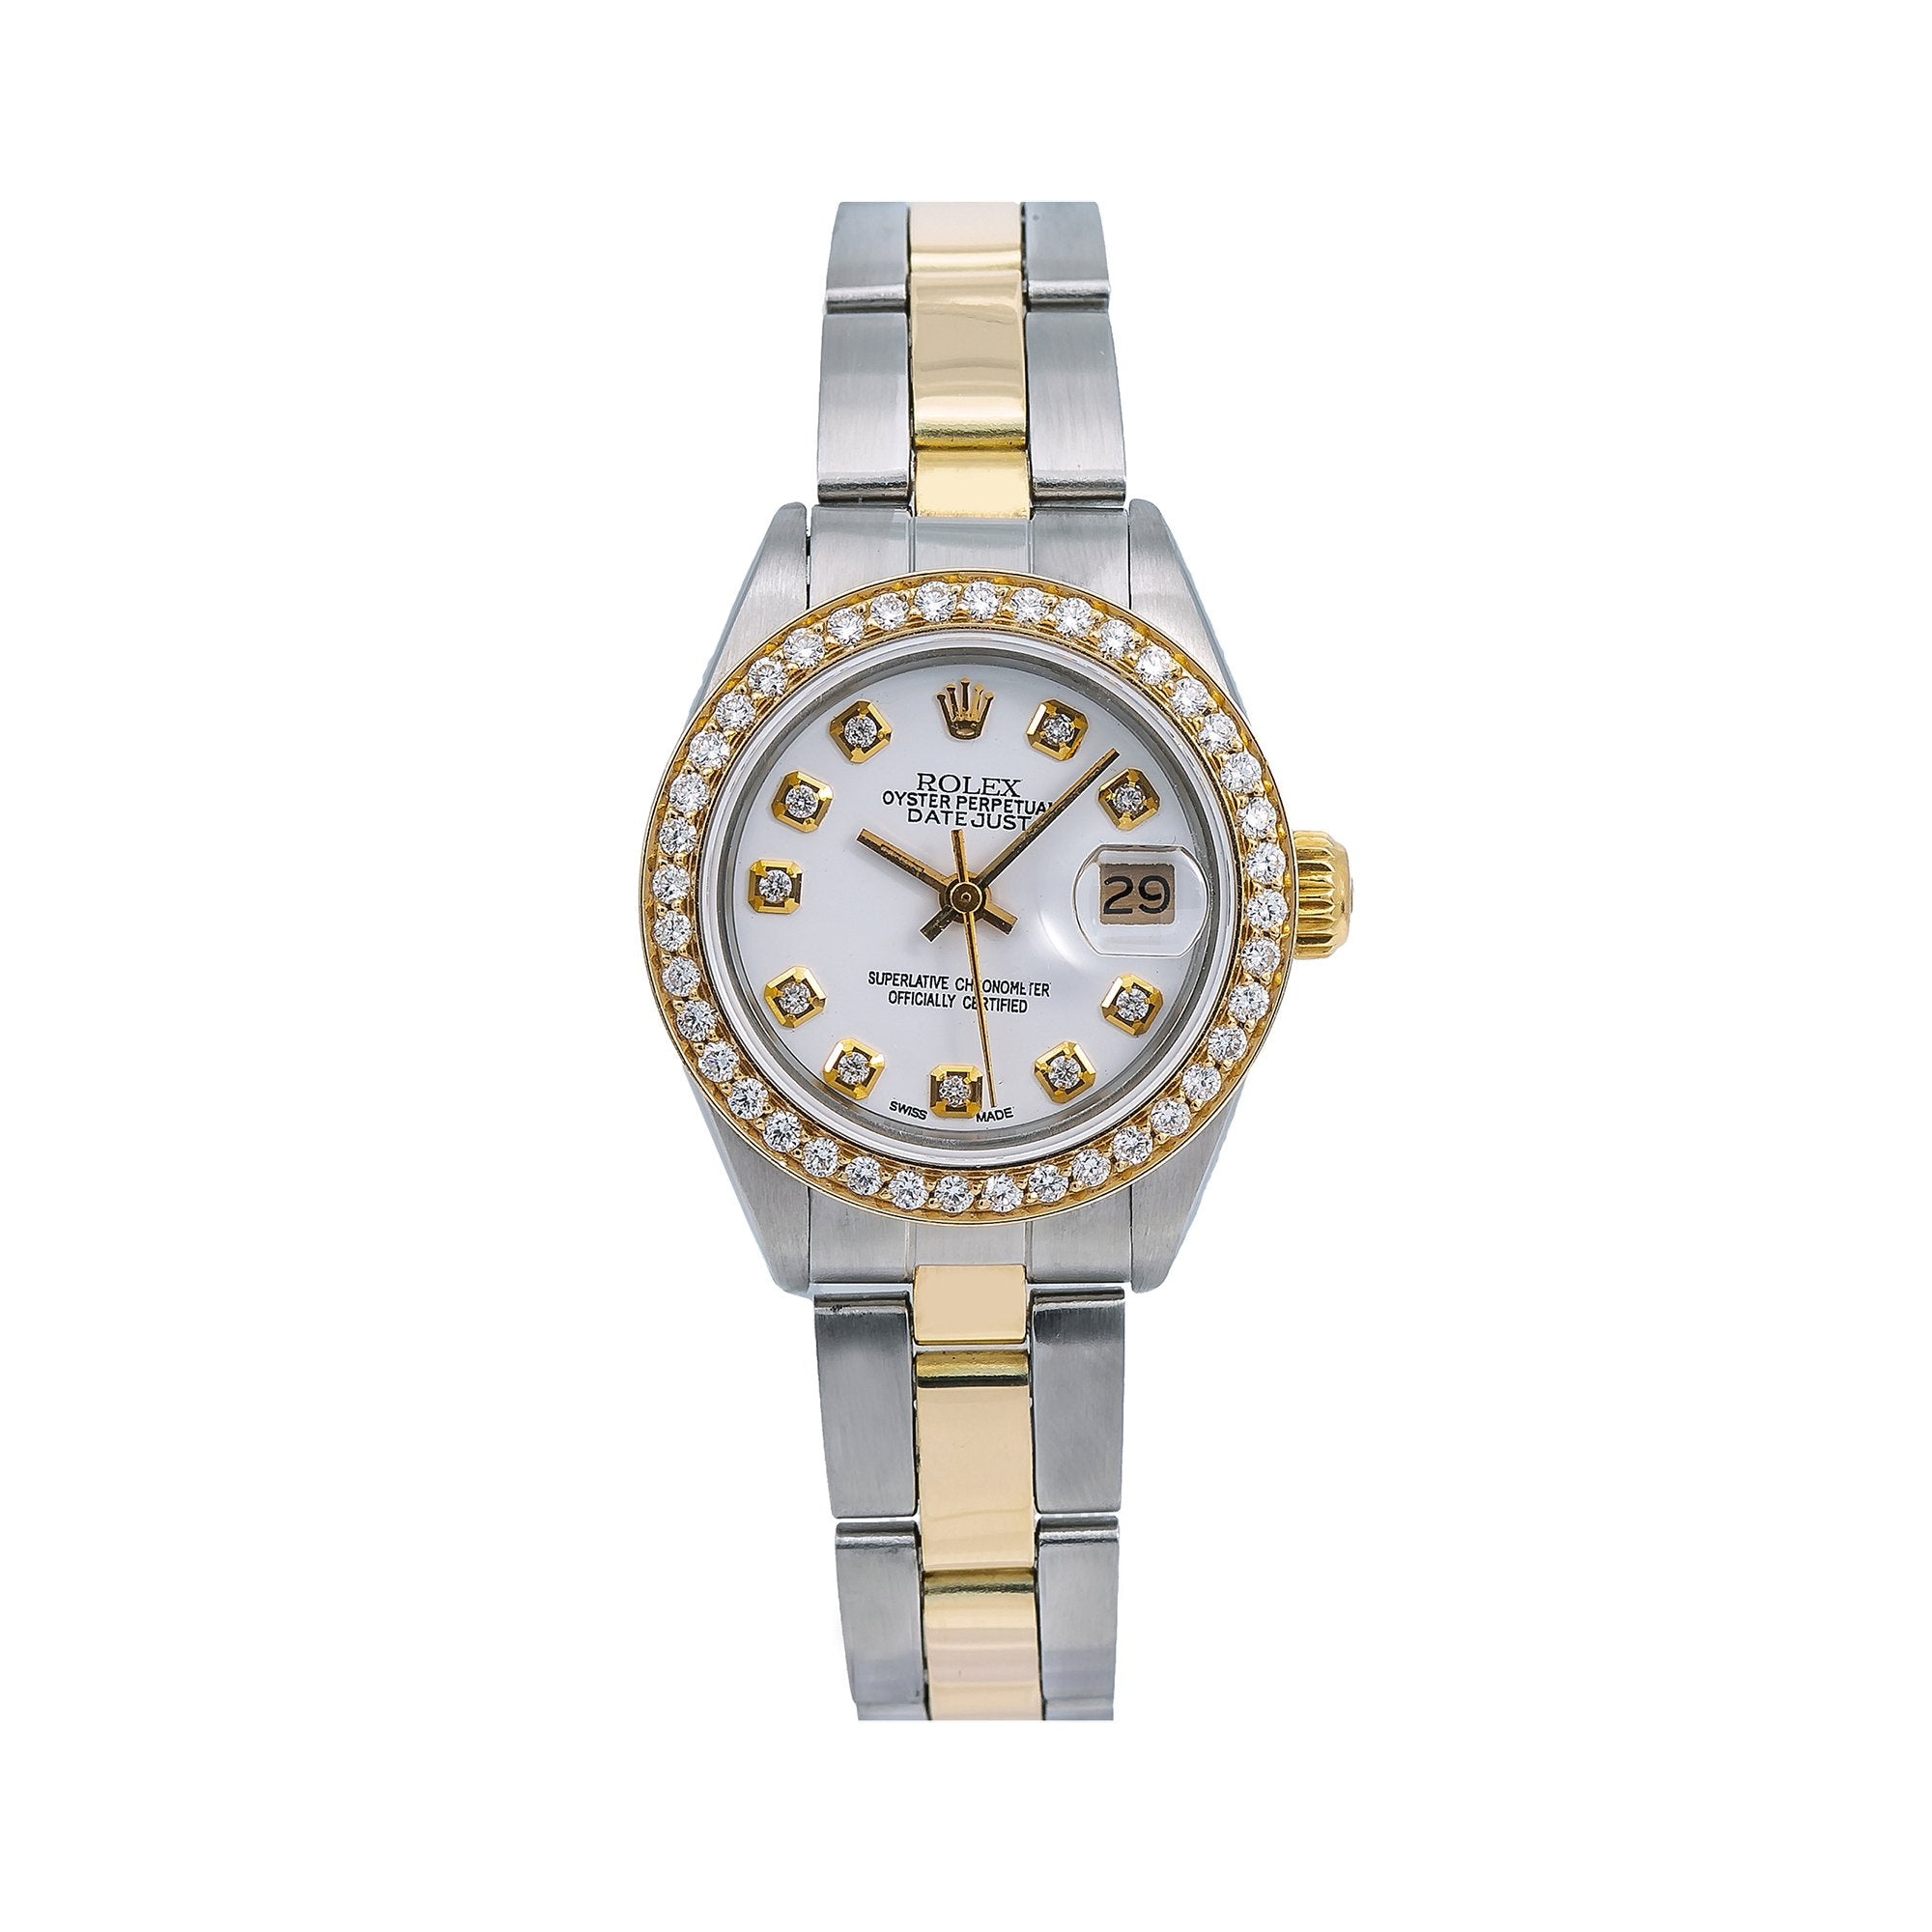 Rolex Lady-Datejust Diamond Watch, 6917 26mm, White Diamond Dial With 0.90 CT Diamonds